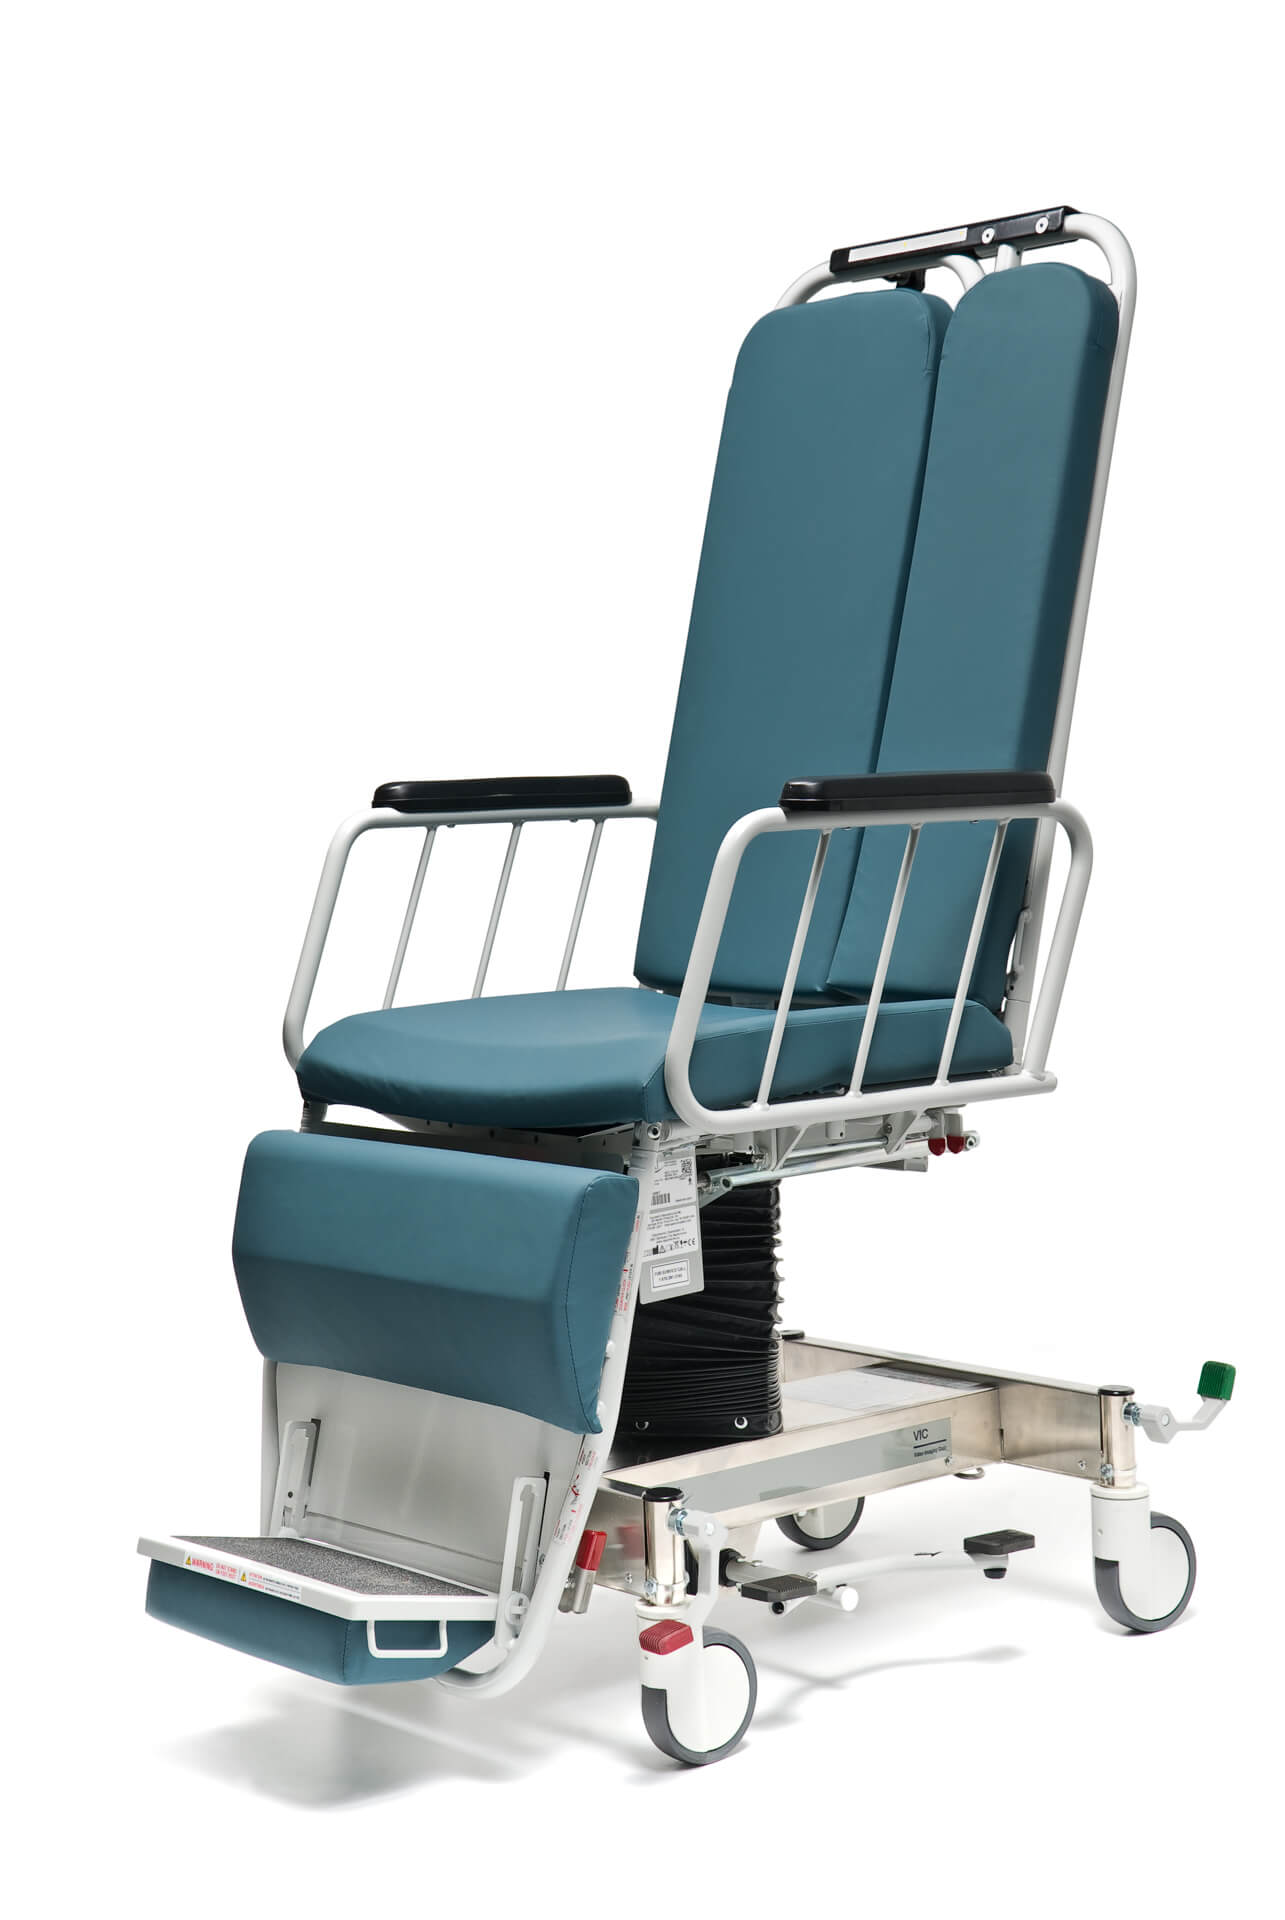 Video Imaging Chair (VIC)